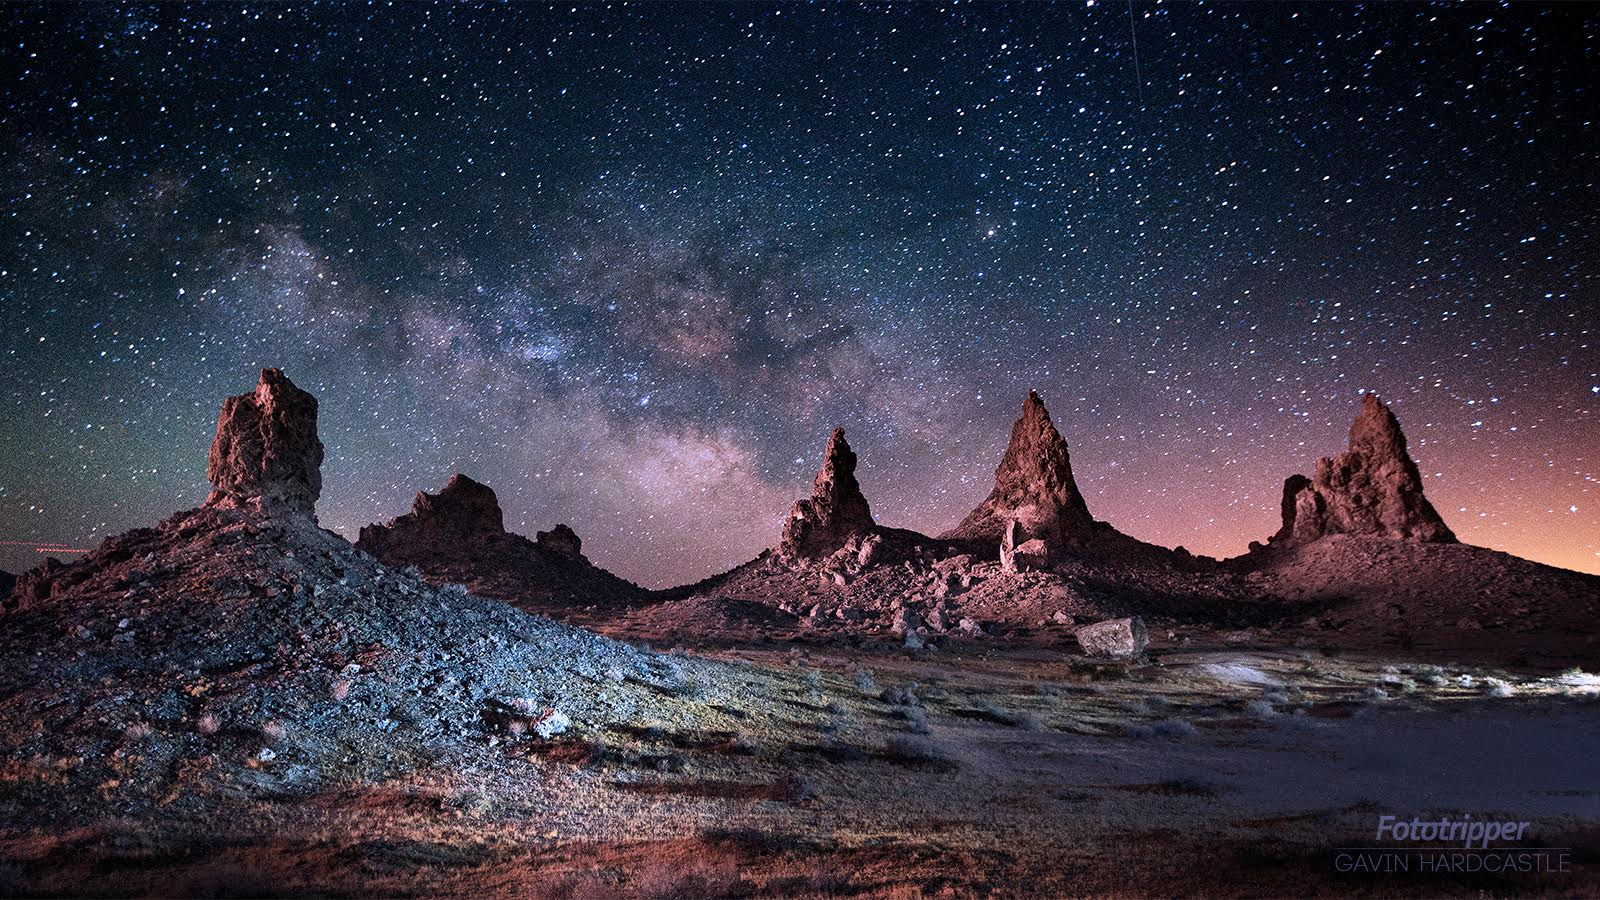 How I Light Paint Epic Milky Way Photos with the A7r – Guest post by Gavin Hardcastle